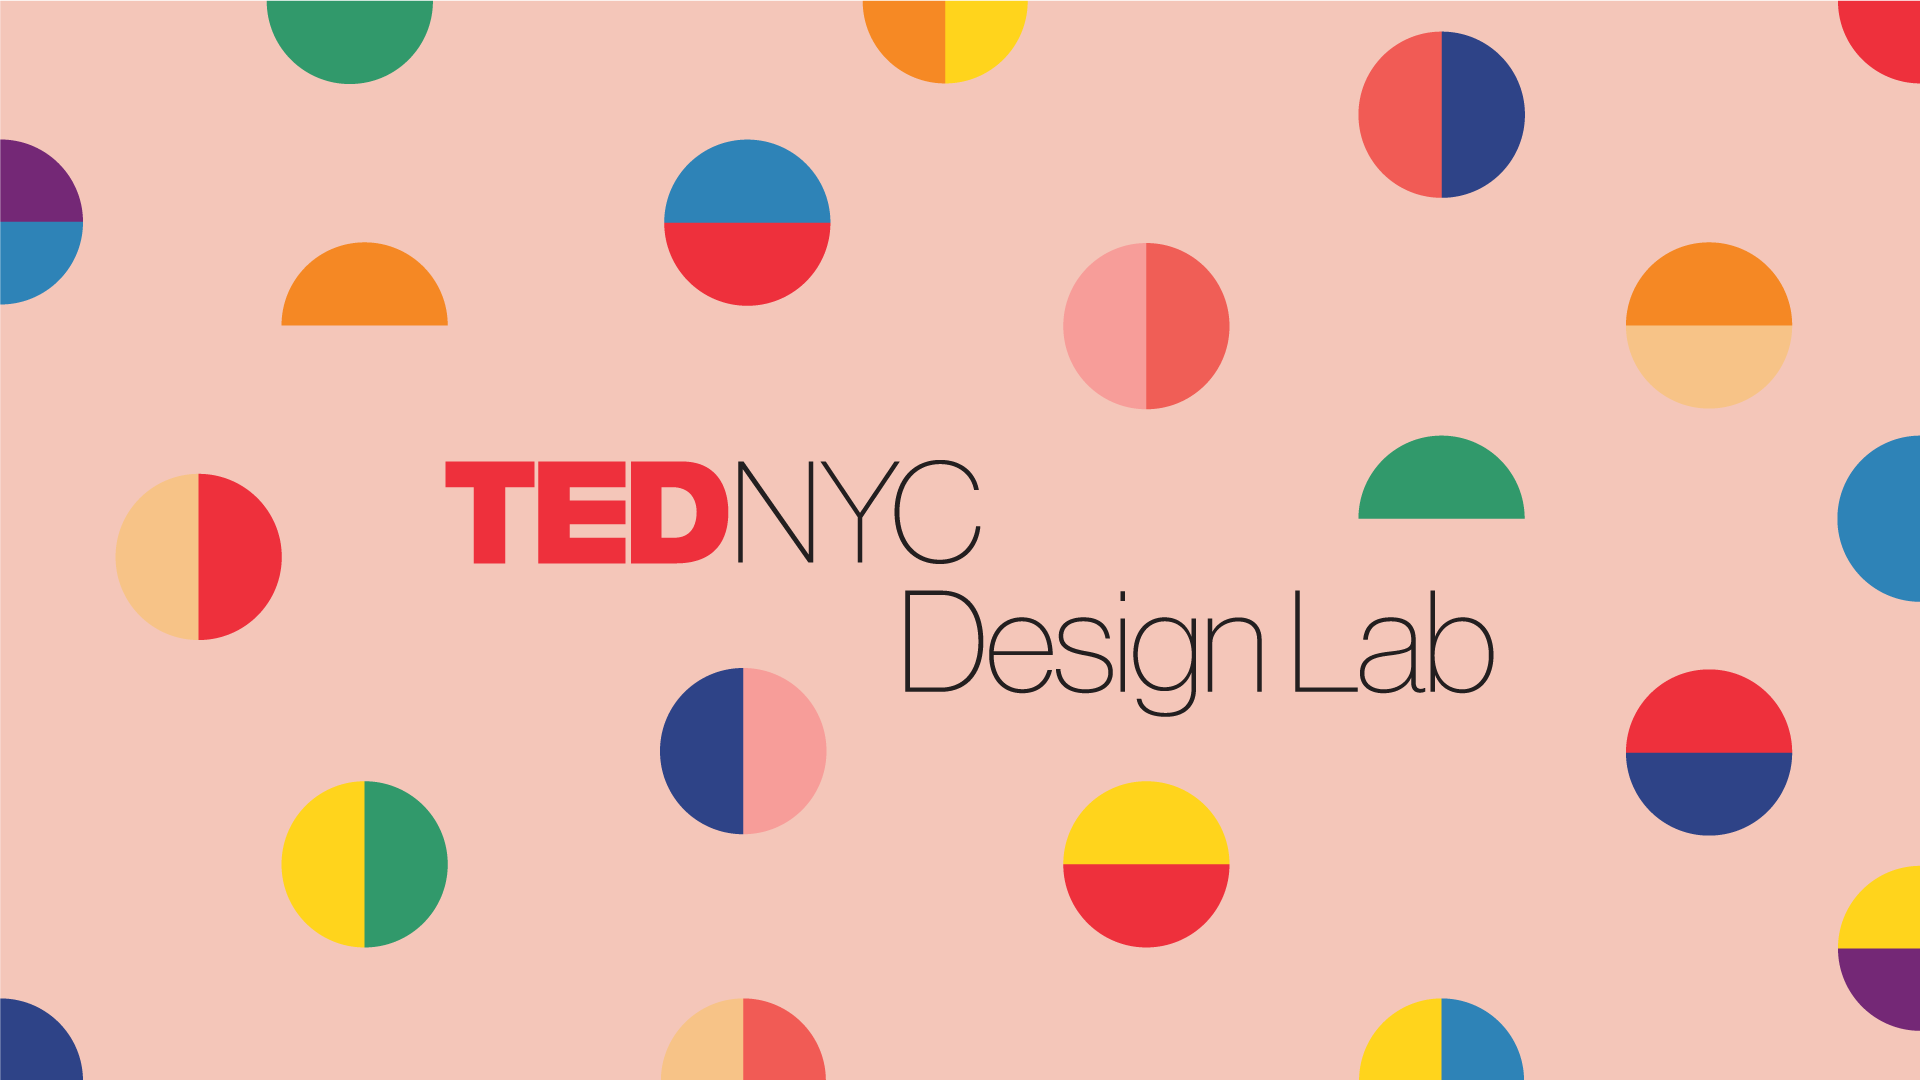 TED NYC Design Lab